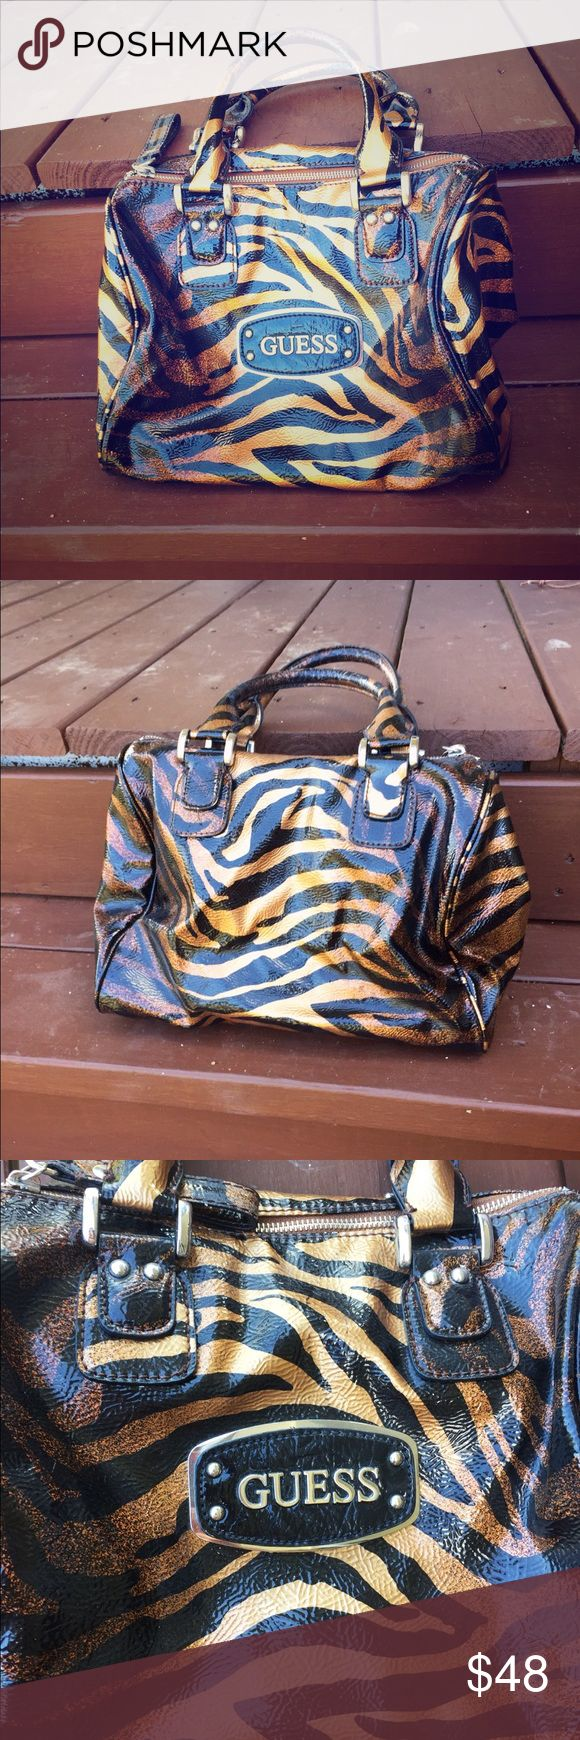 Guess Tiger Stripe Handbag Elegant hand carry purse. Authentic GUESS brand. Size of a speedy 30. Rounded handles and trimmings. Used less than a handful of times. Silver hardware. Interior of bag is in perfect condition. Please use offer button to submit offers! 💖 Guess Bags